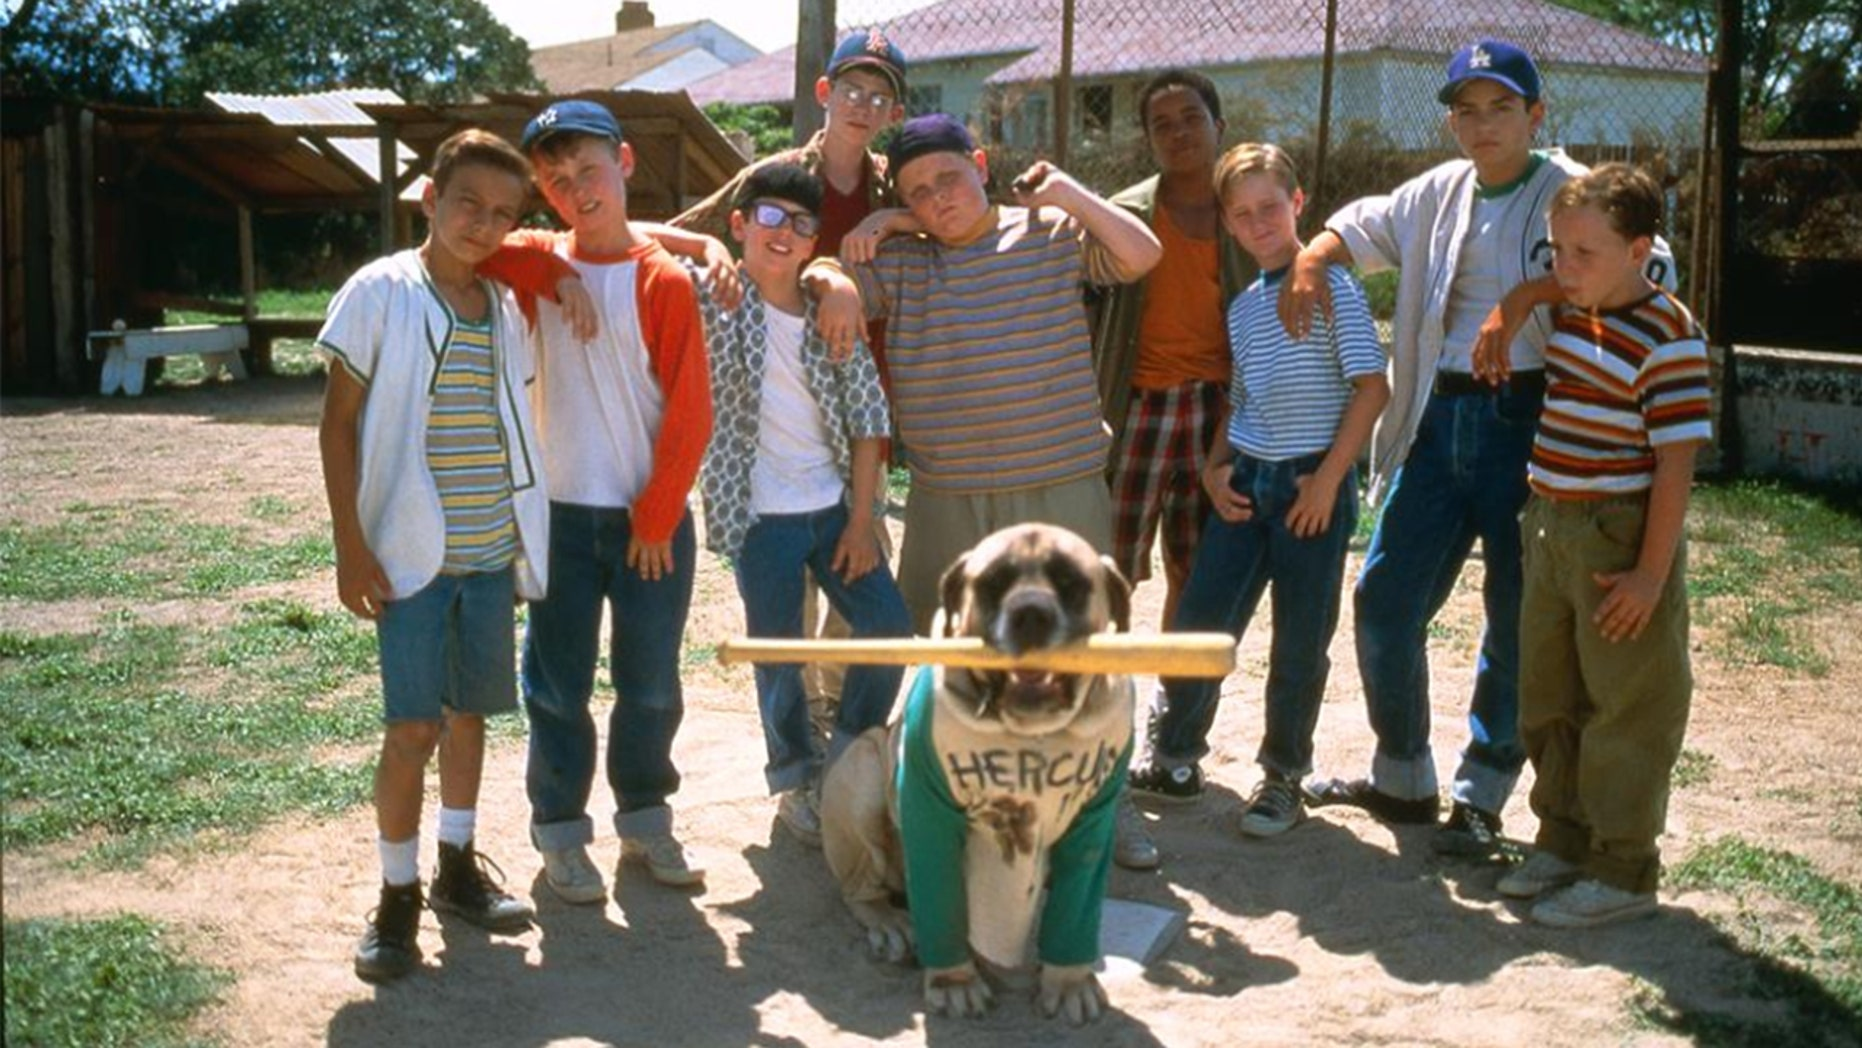 'The Sandlot' may come back for a prequel movie 25 years after its release.